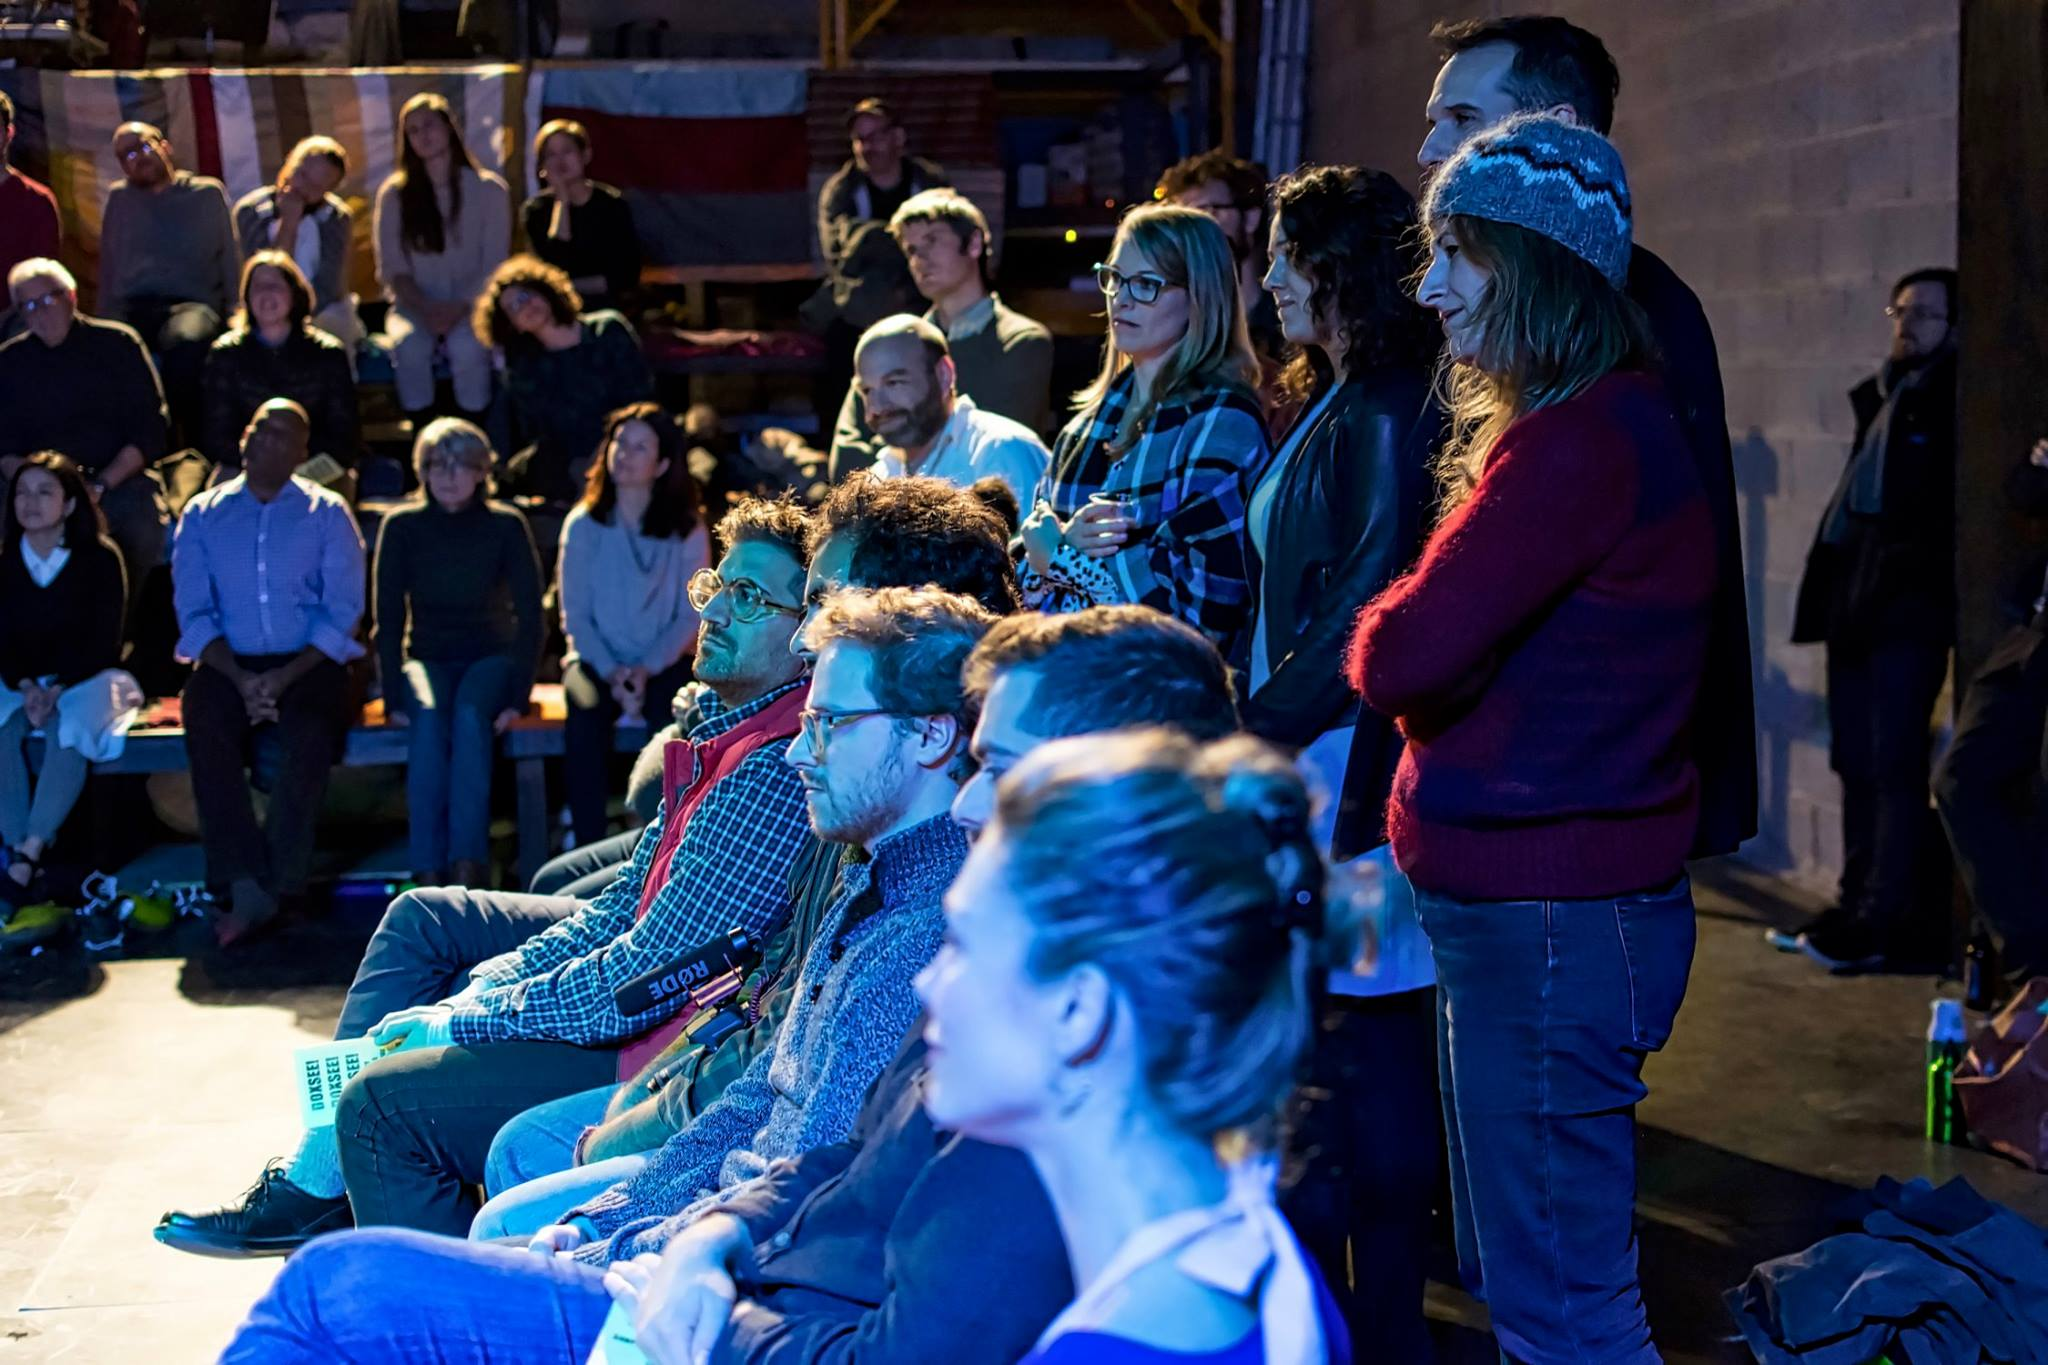 photo by  Adrian Jones  | featuring  Nathaniel Basch-Gould  and audience members